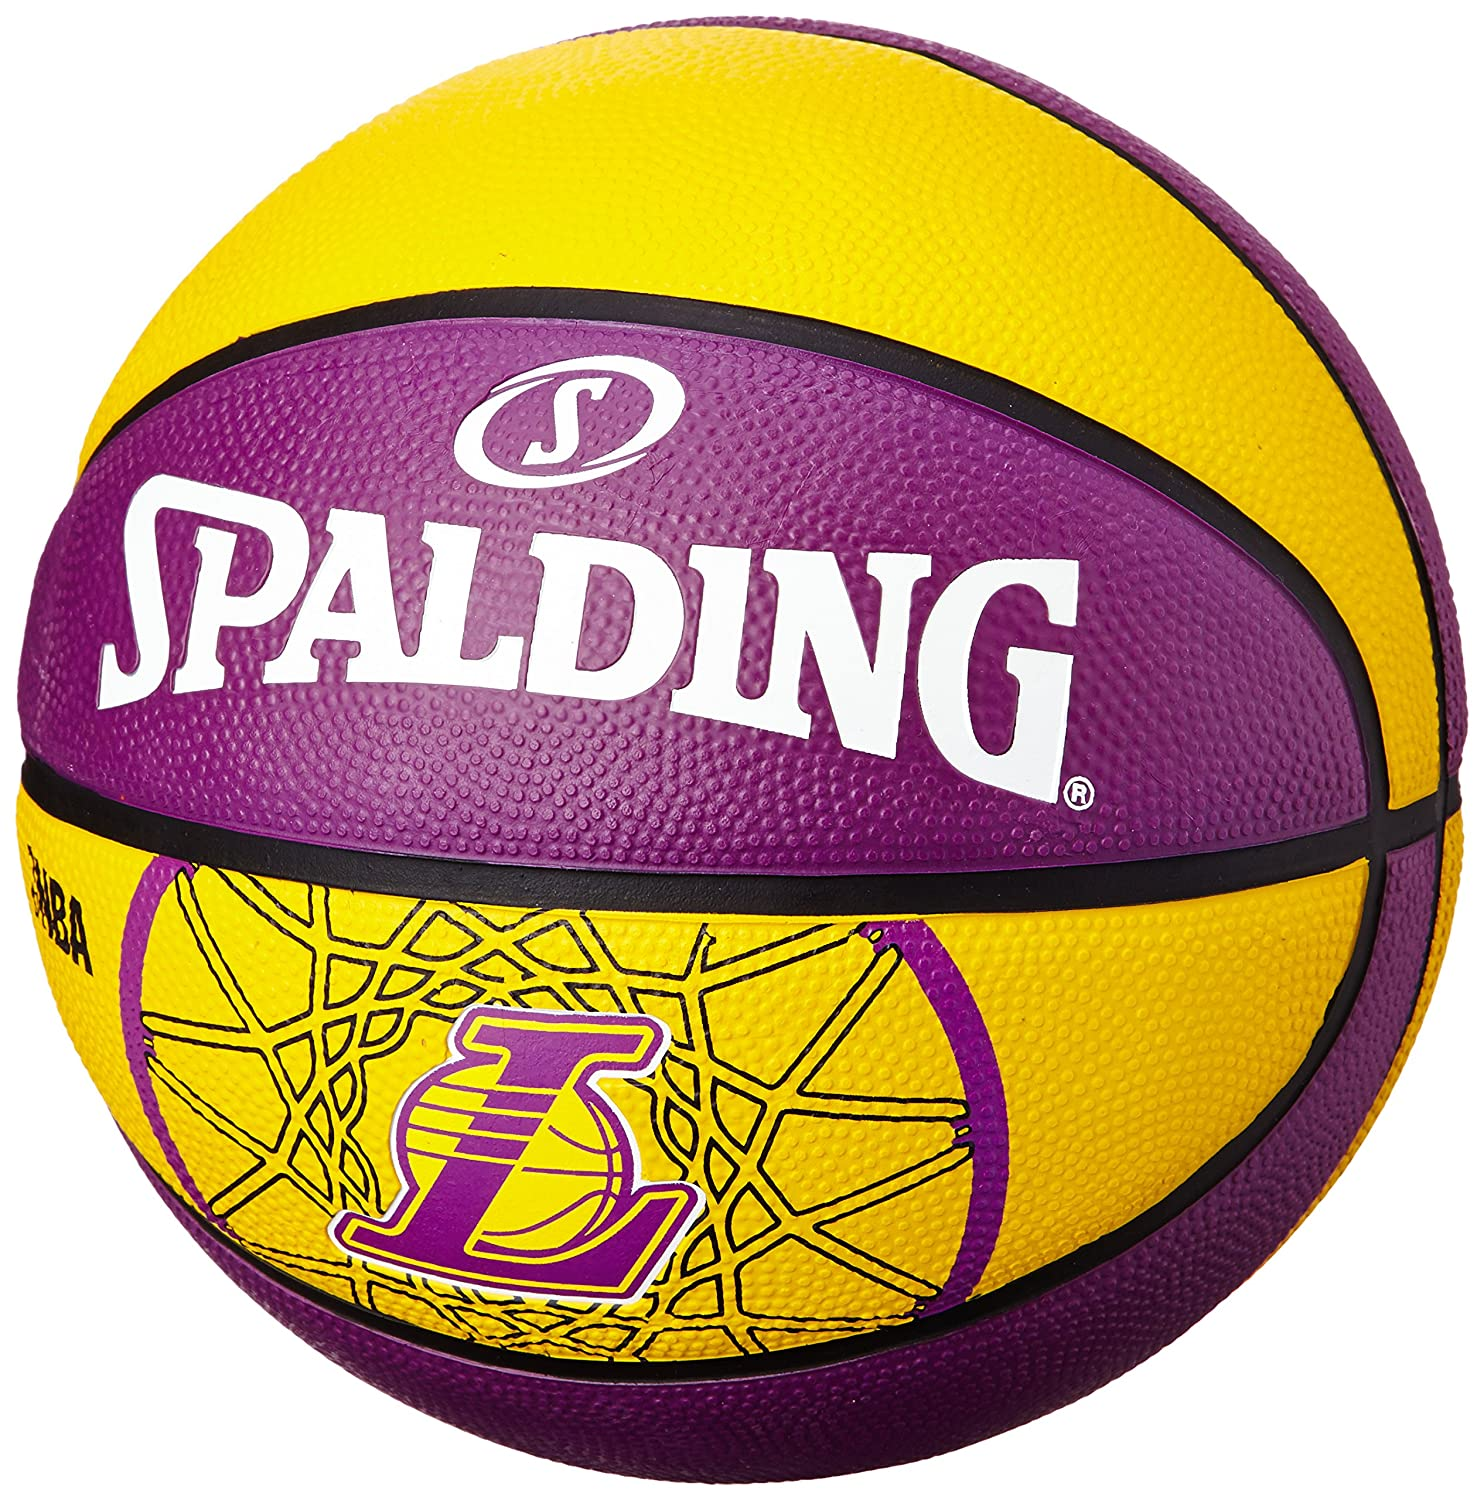 Spalding Ballon Team Ball L.A.Lakers Taille 7 Gelb/Lila 3001587010617